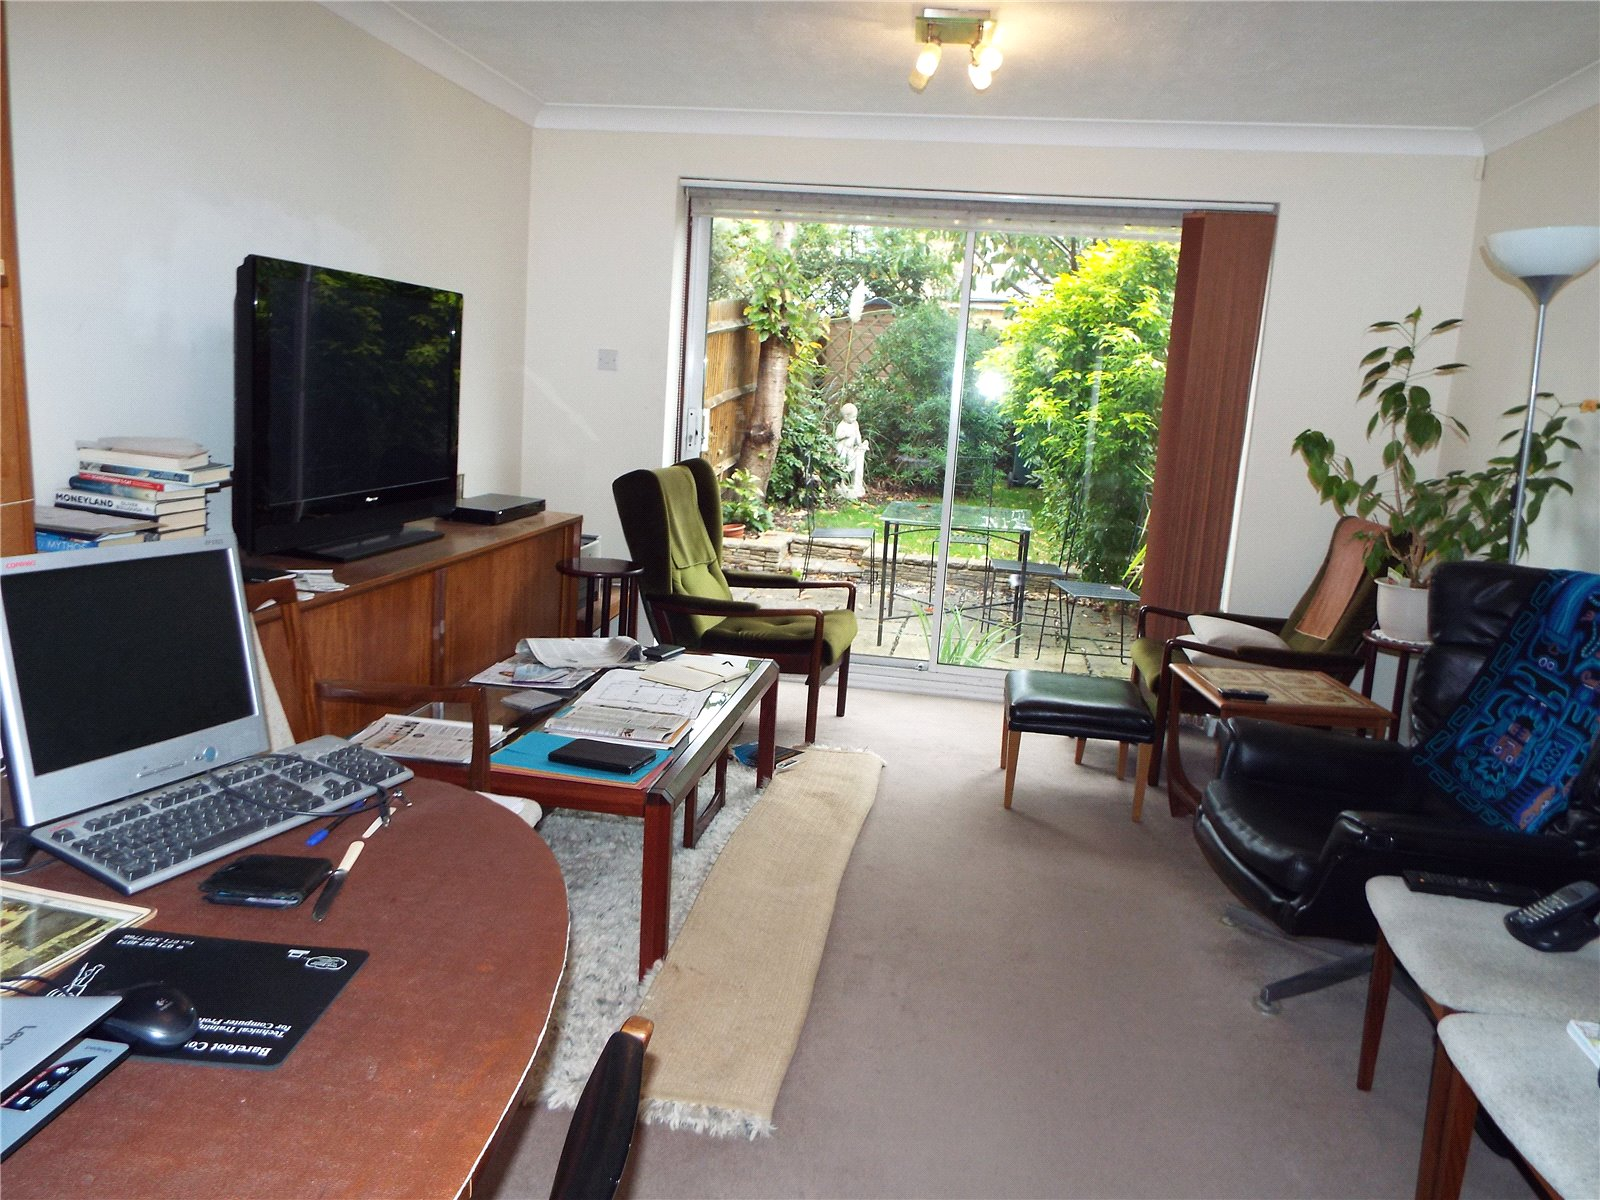 2 bed house to rent in New Southgate, N11 3PY  - Property Image 4